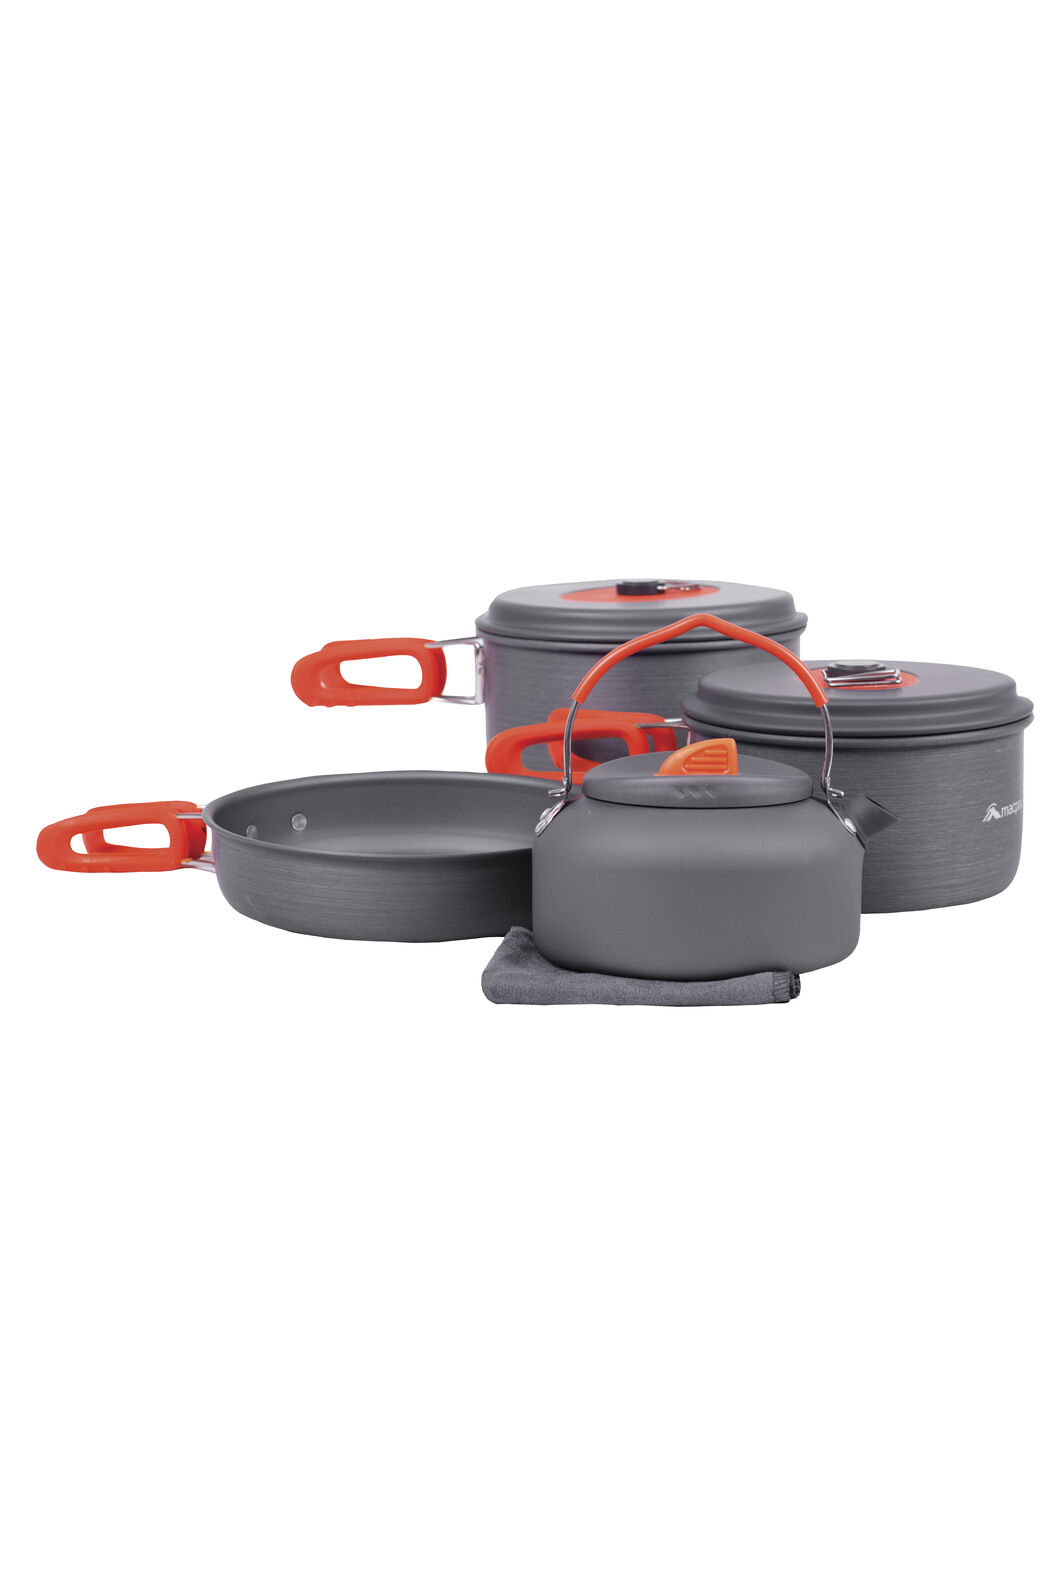 Macpac 7 Piece Camping Cook Set, Orange, hi-res